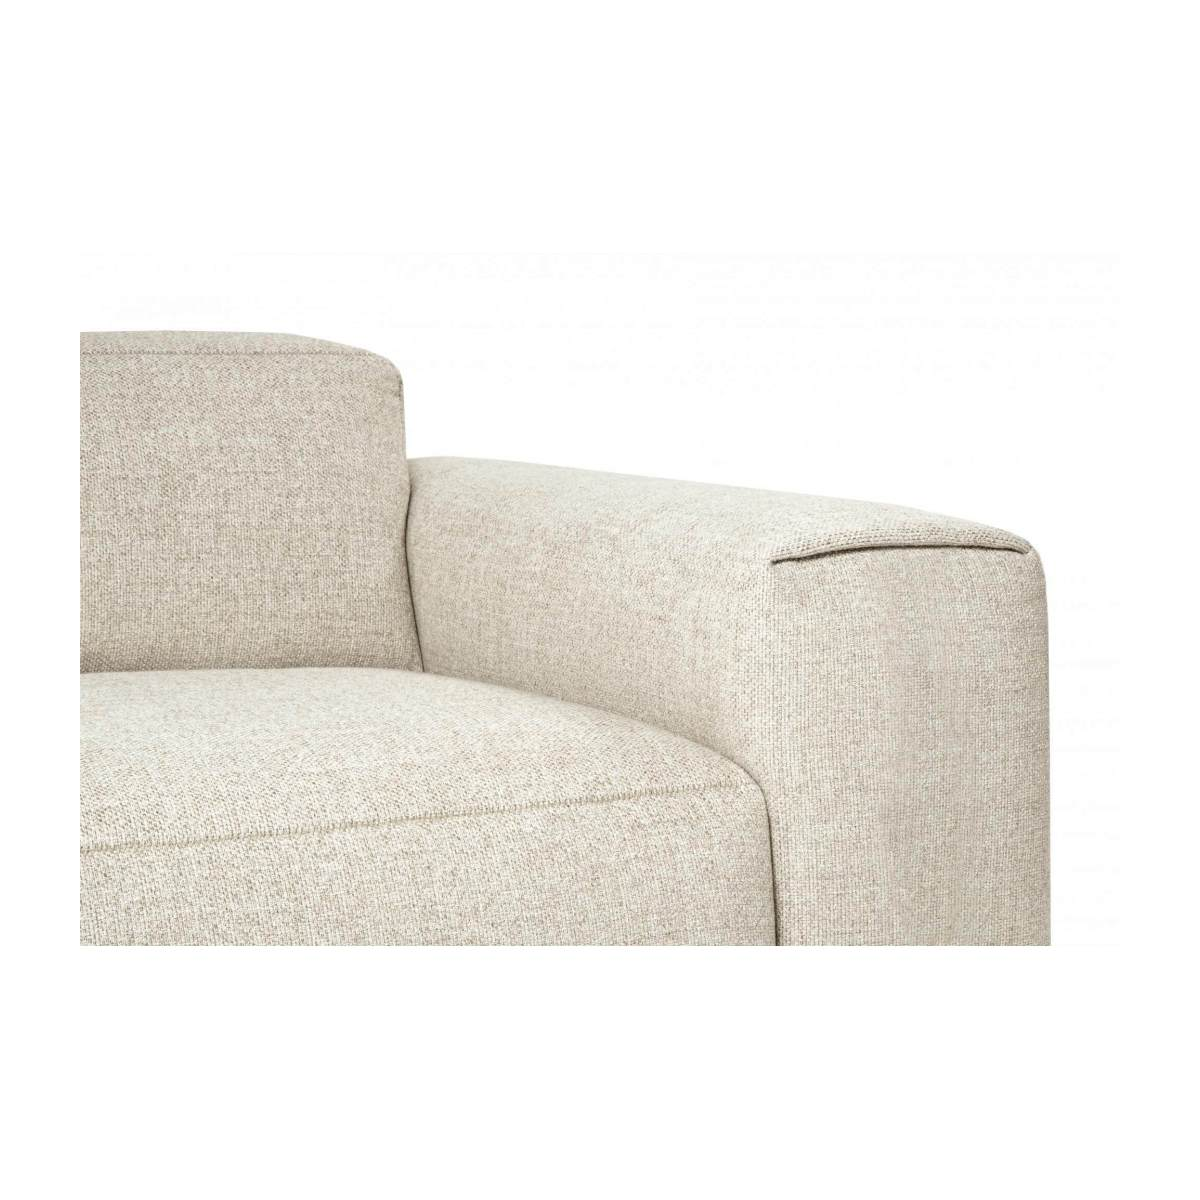 4 seater sofa in Lecce fabric, nature n°6